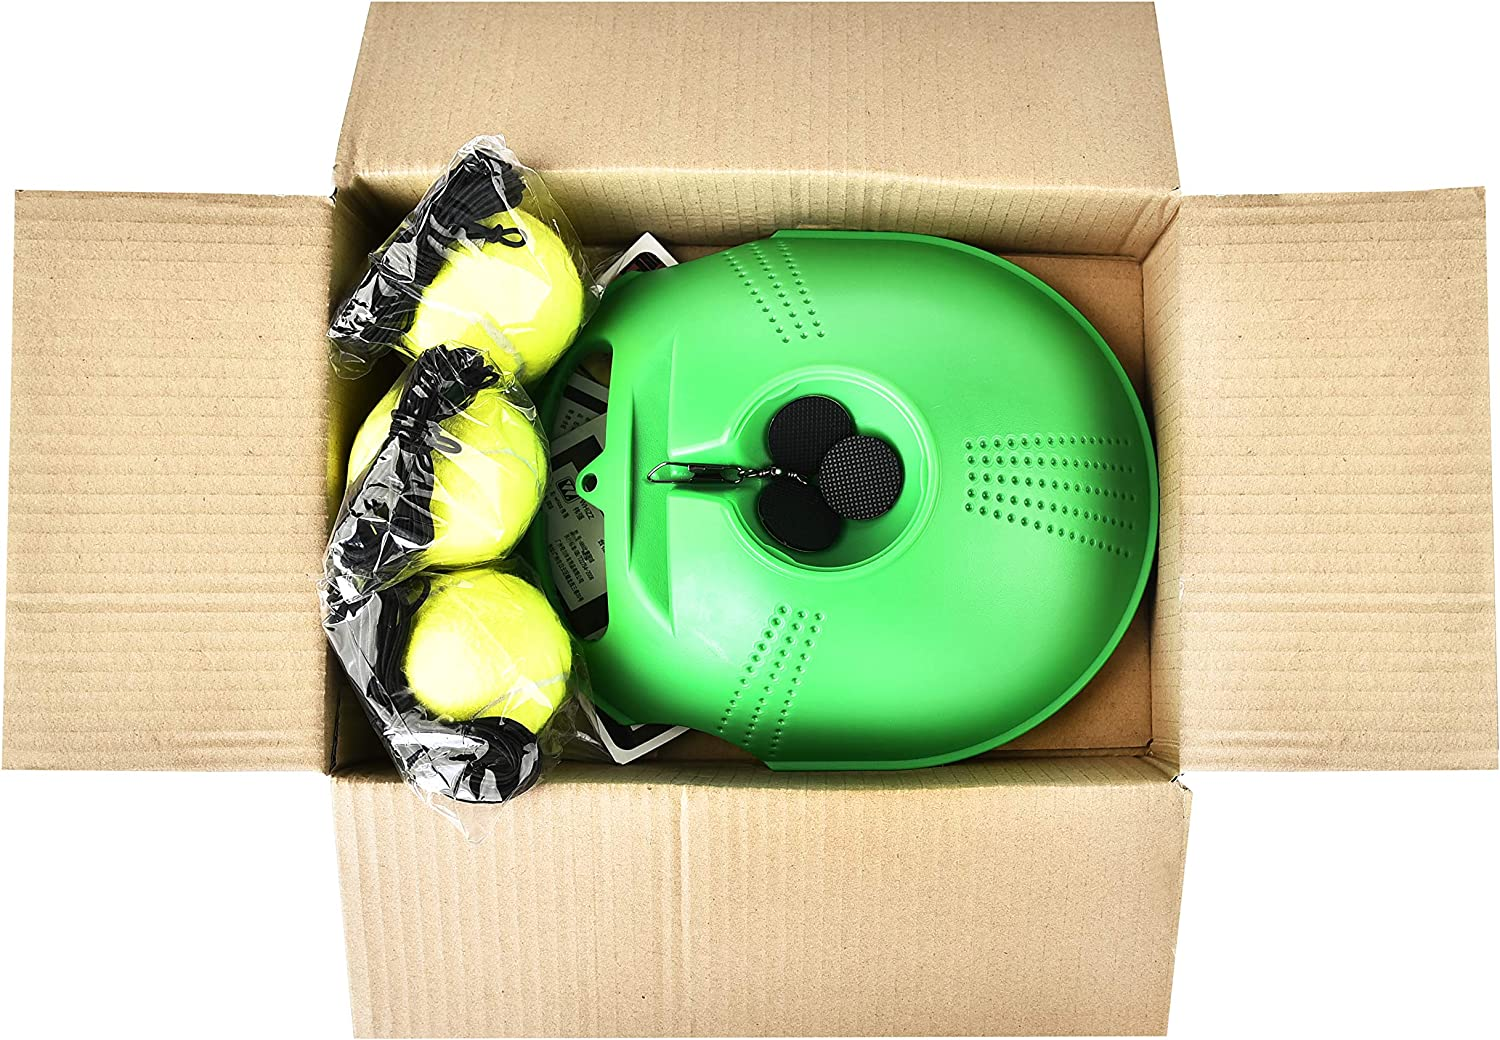 Base + 3 Balls │Anti Slippery Tennis Trainer Equipment│Perfect Practice for Beginners to Pros│Kids Tennis Training Set│Solo Tennis Trainer Green Color WHIZZ Tennis Self Training Tool